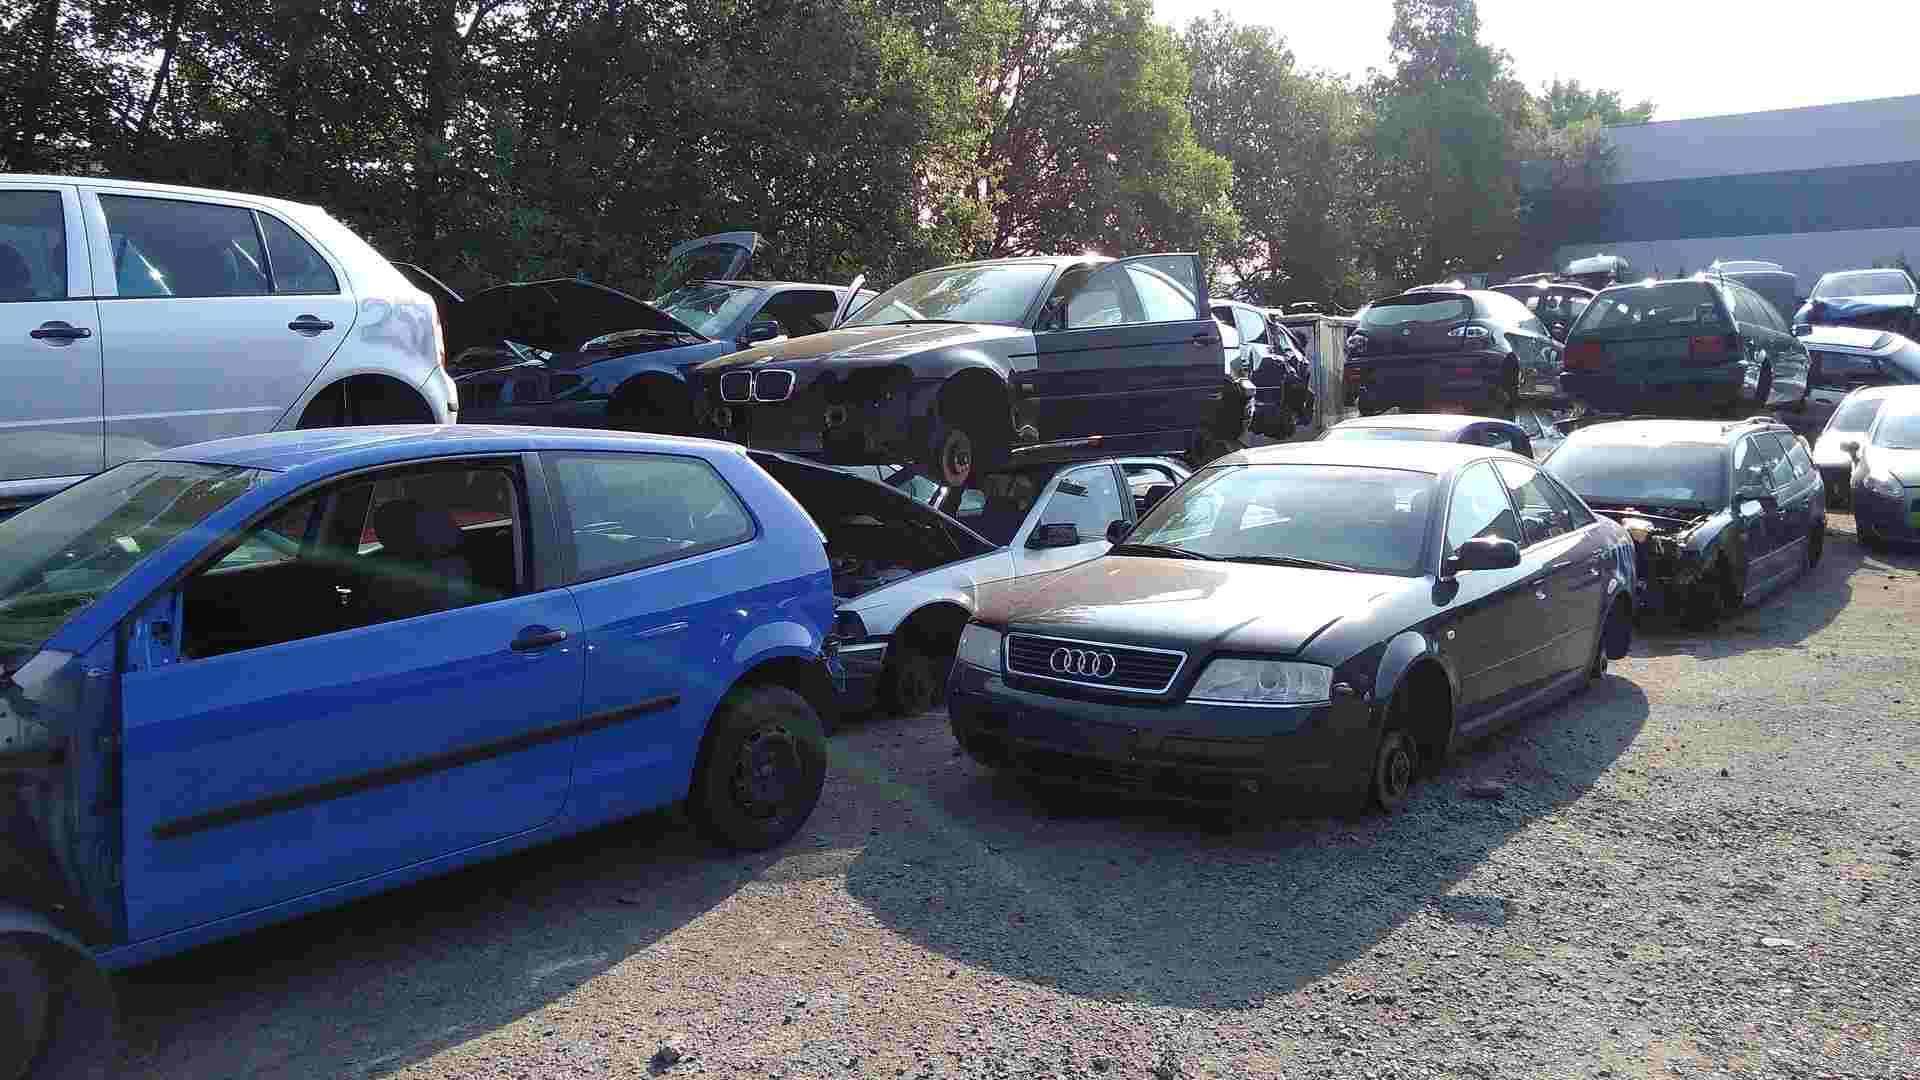 Explained: National Automobile Scrappage Policy and what it means for vehicle owners in India- Technology News, Firstpost